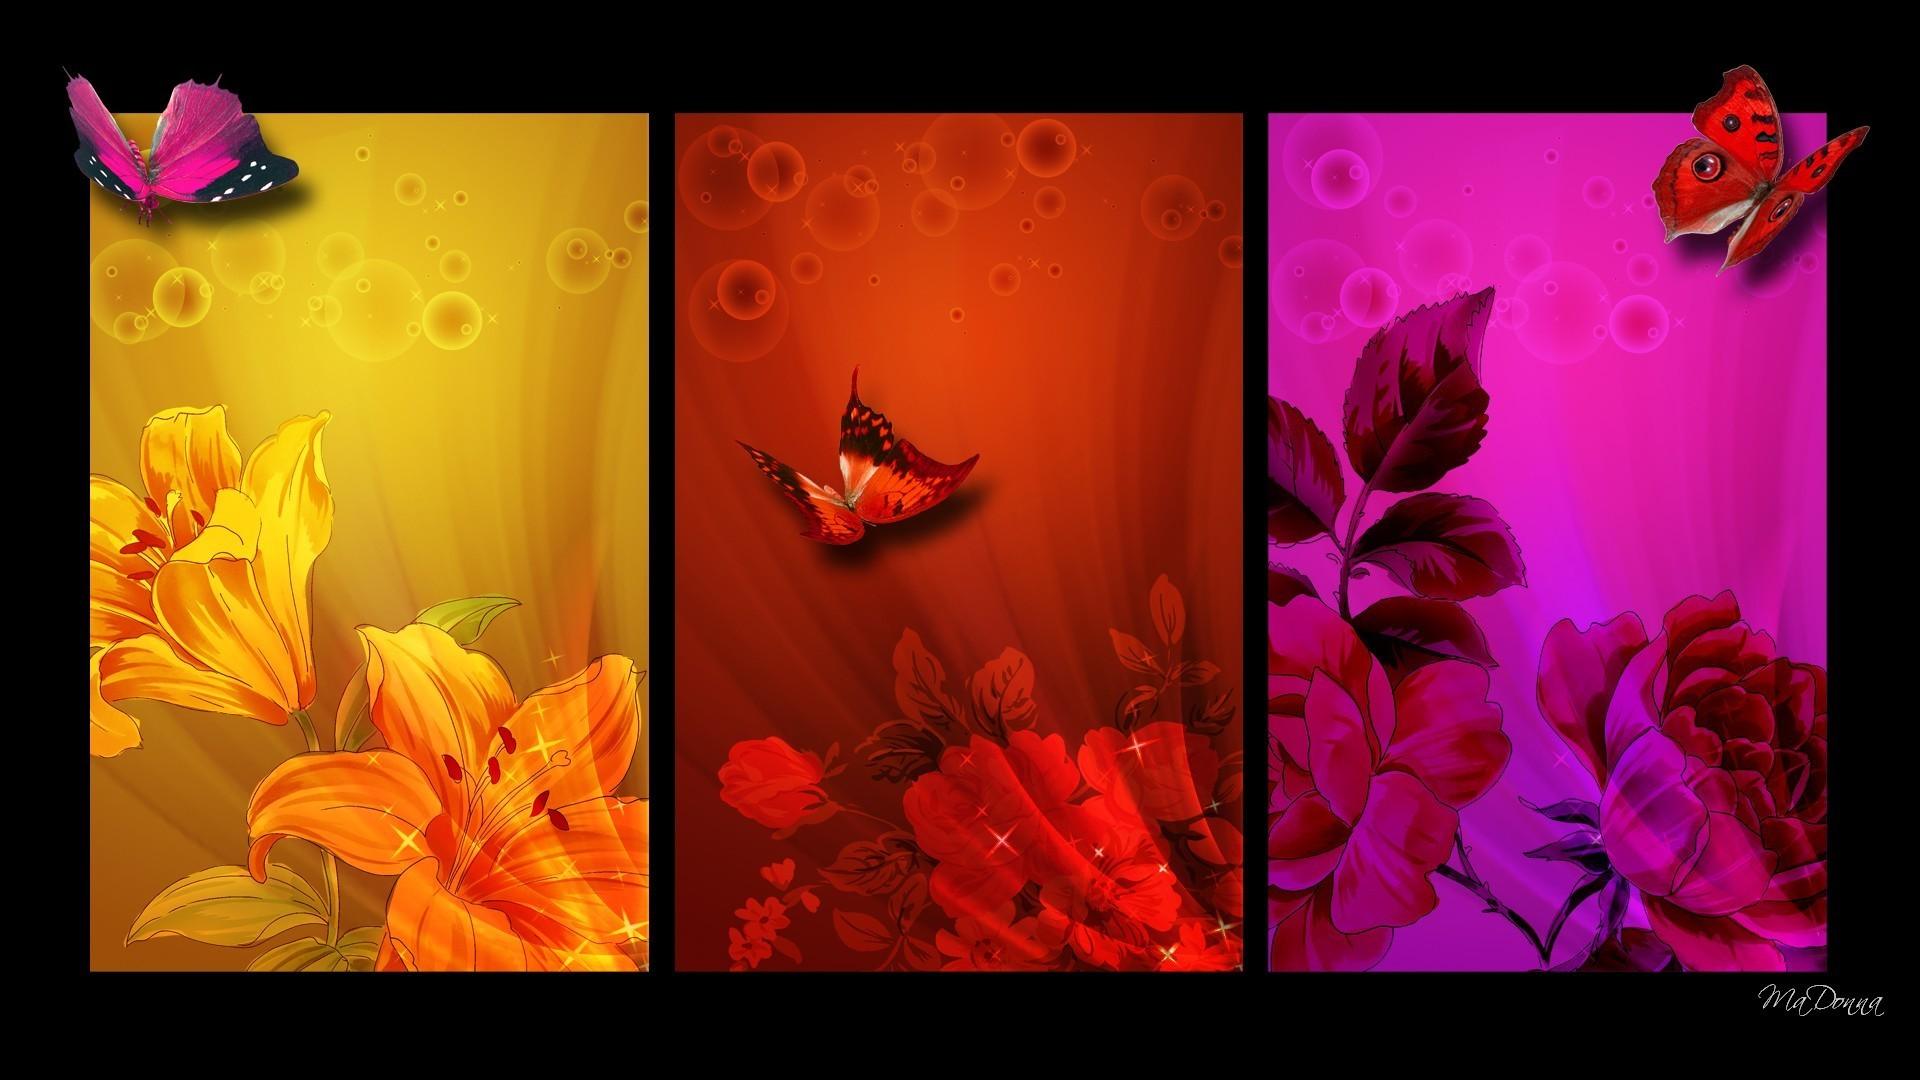 1920x1080 Lilies Roses Summer Pink Spring Red Color Fleurs Gold Blocks Collage Floral  Bright Butterflies Flowers Block Papillon Flower Leaves Orange Wallpaper Hd  Full ...